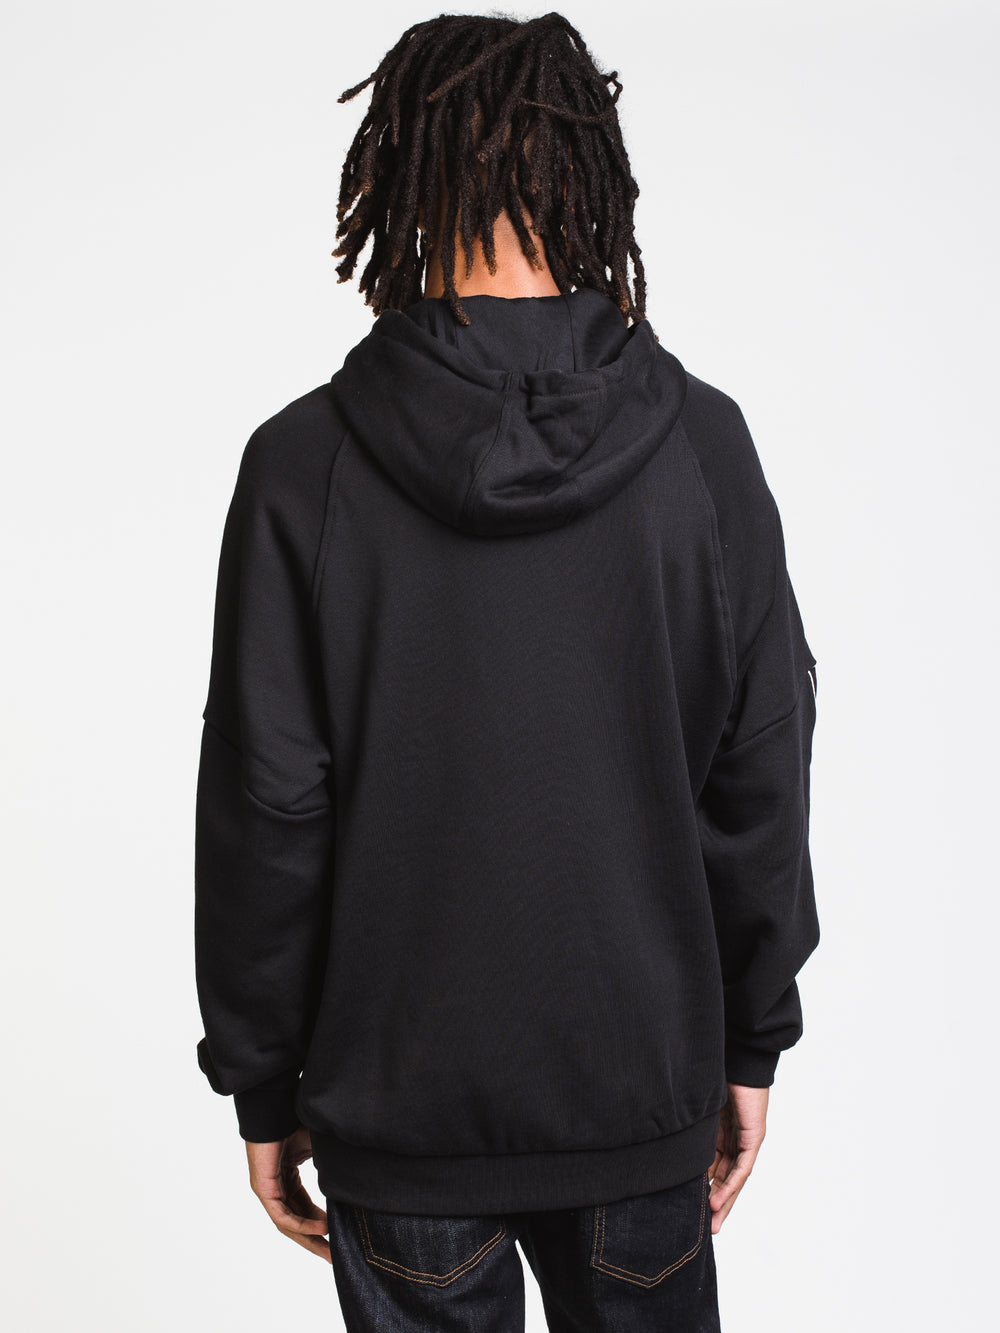 MENS BG TF OUT PULL OVER HOODIE- BLK/WHT